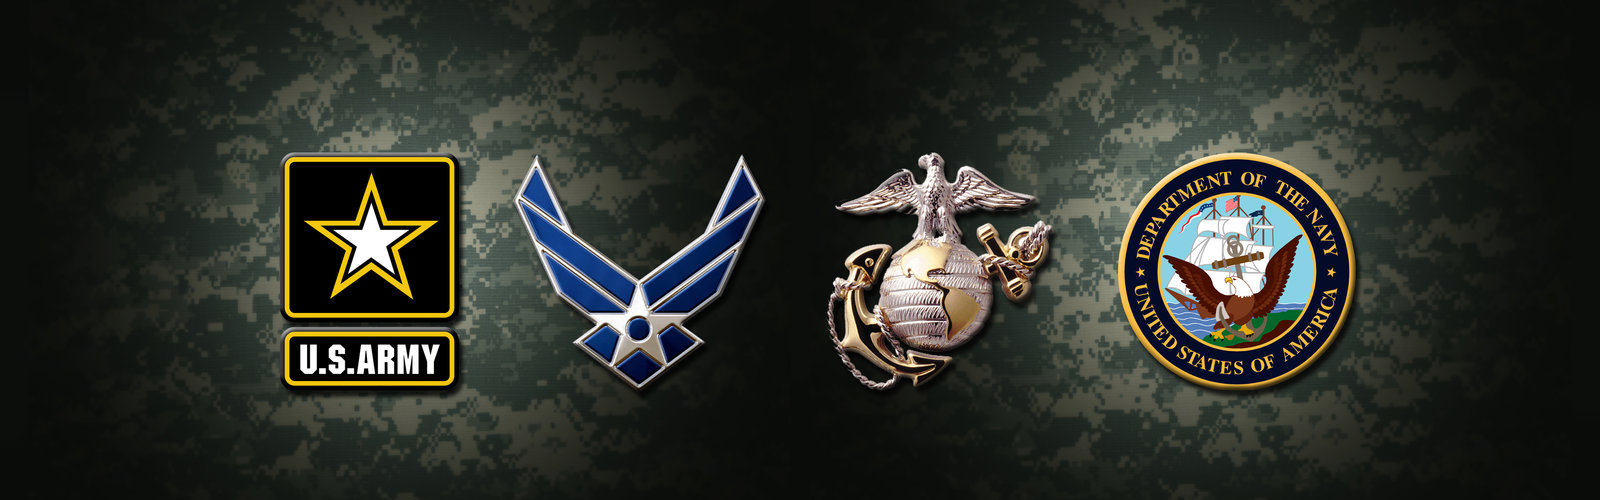 Military_Branches_by_arichens